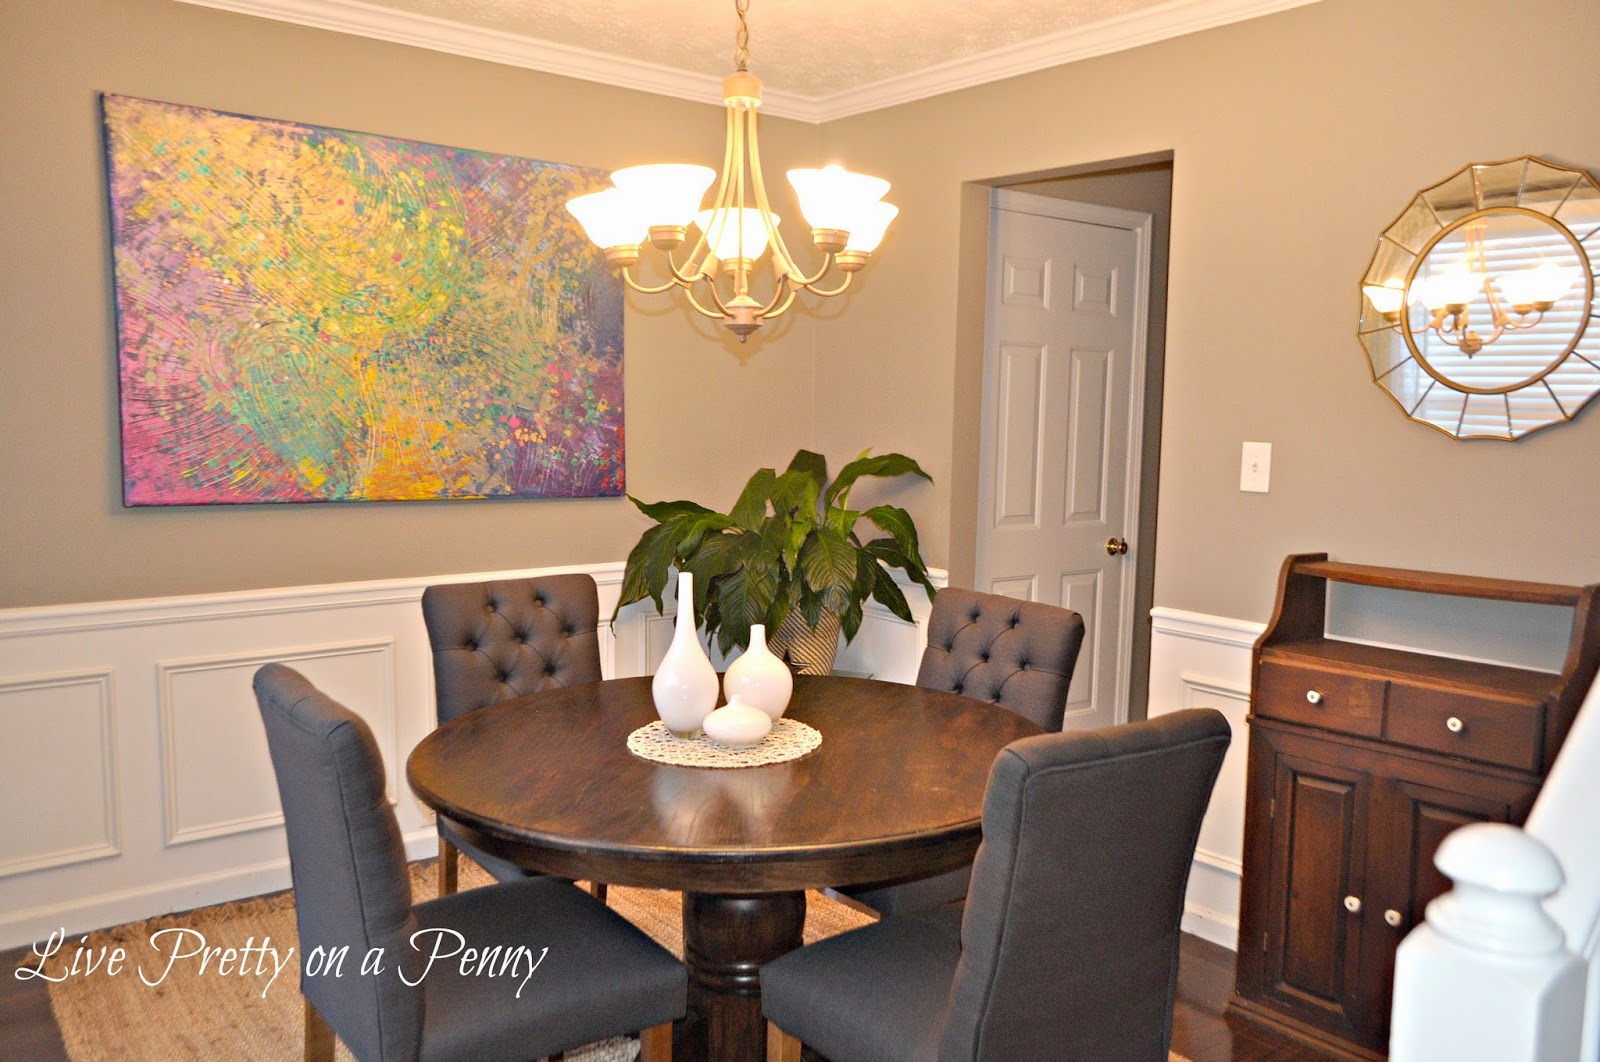 Help i can 39 t choose a paint color live pretty on a penny for Tejas dining room at t conference center